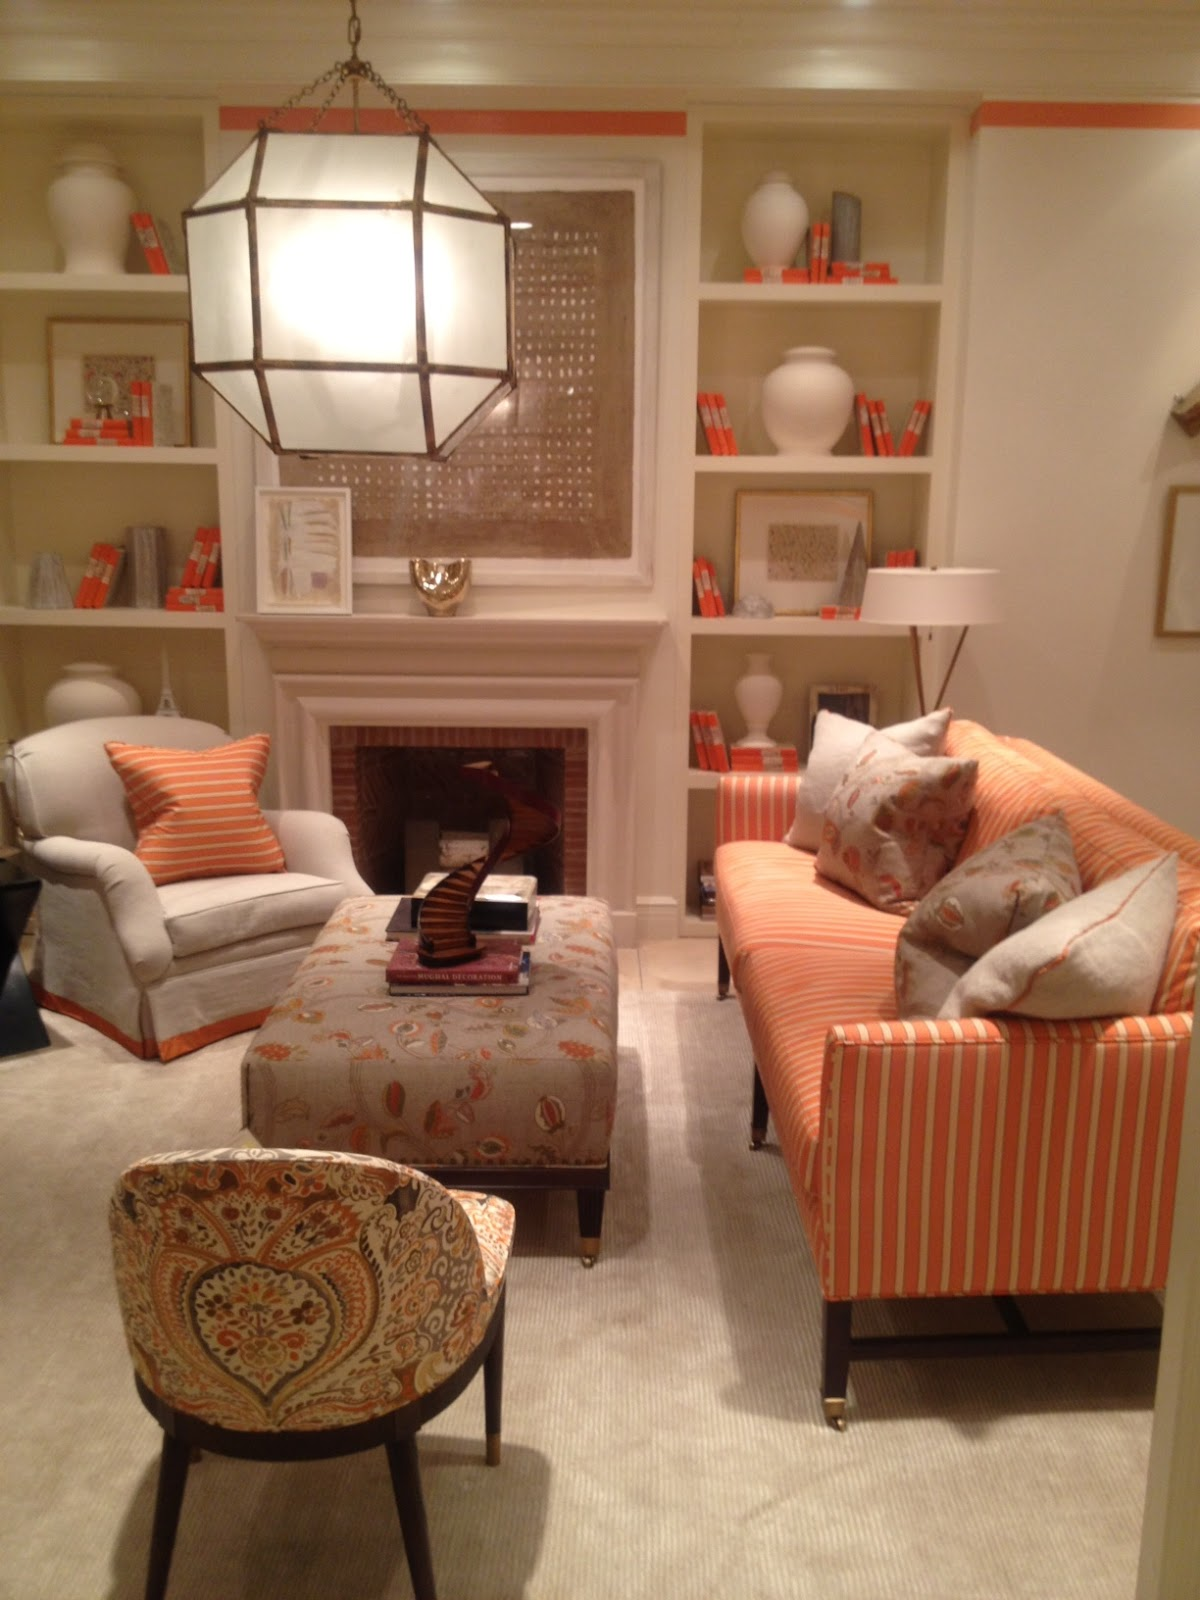 LUCY WILLIAMS INTERIOR DESIGN BLOG: THE NYC DESIGN CENTER: MY FAVORITE  THINGS FROM THIS WEEKu0027S VISIT